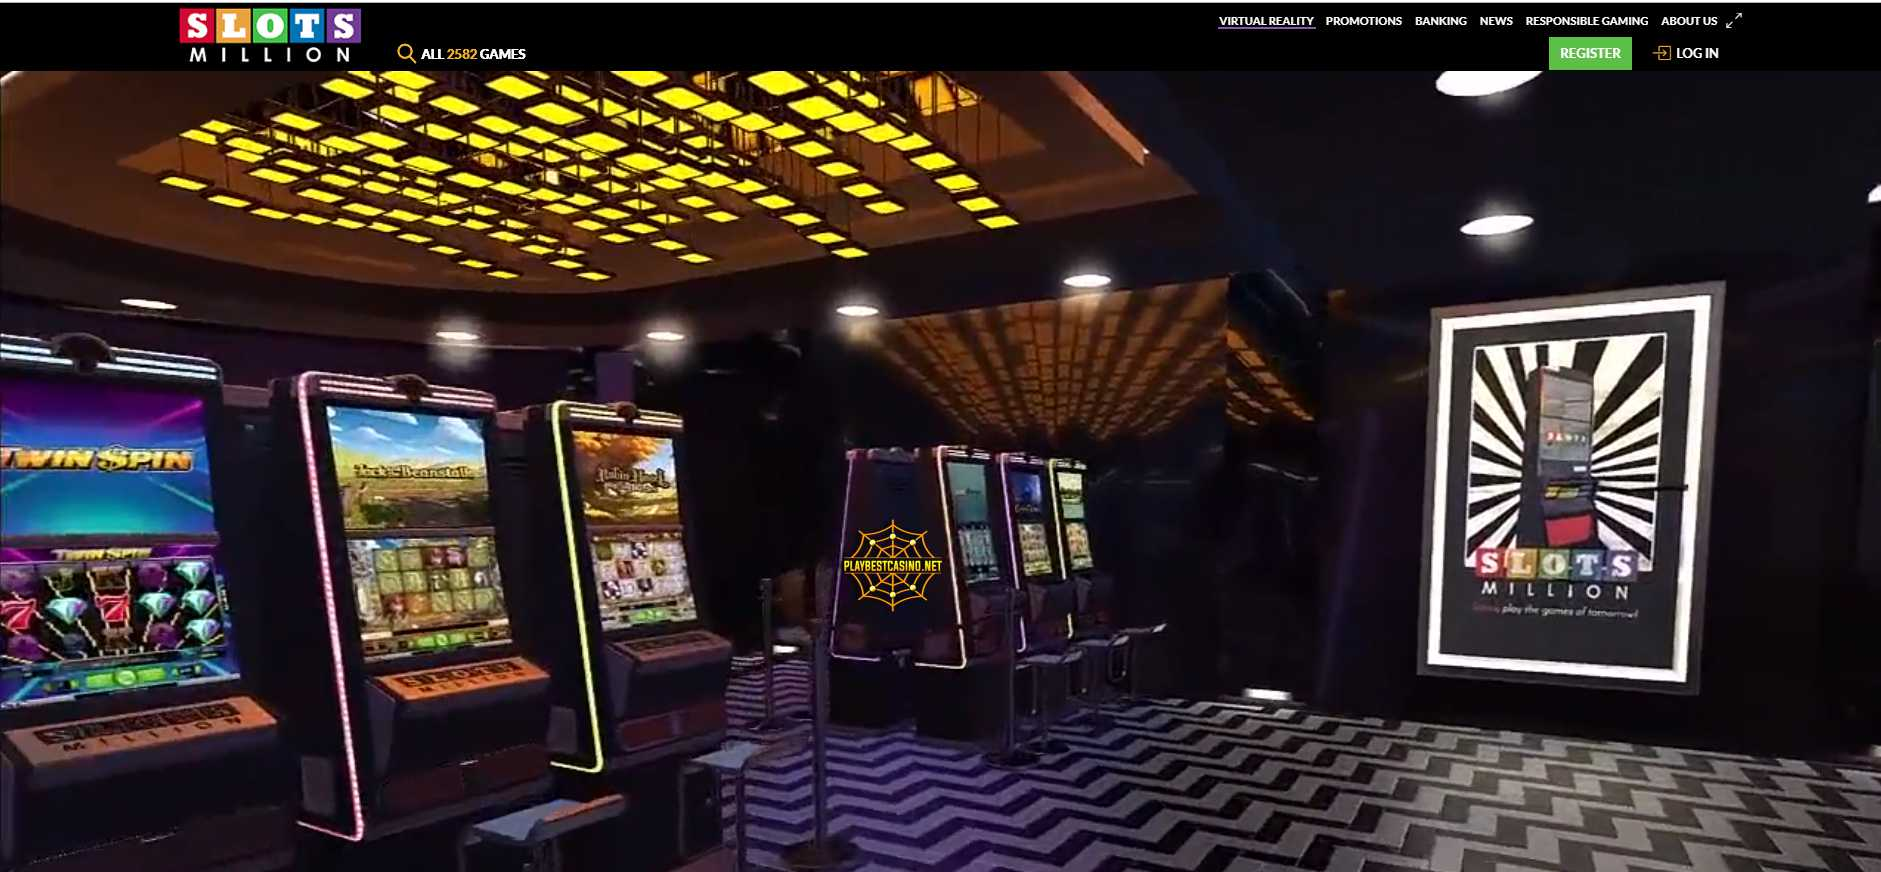 Slotsmillion-3000 games! First social casino with virtual reality!